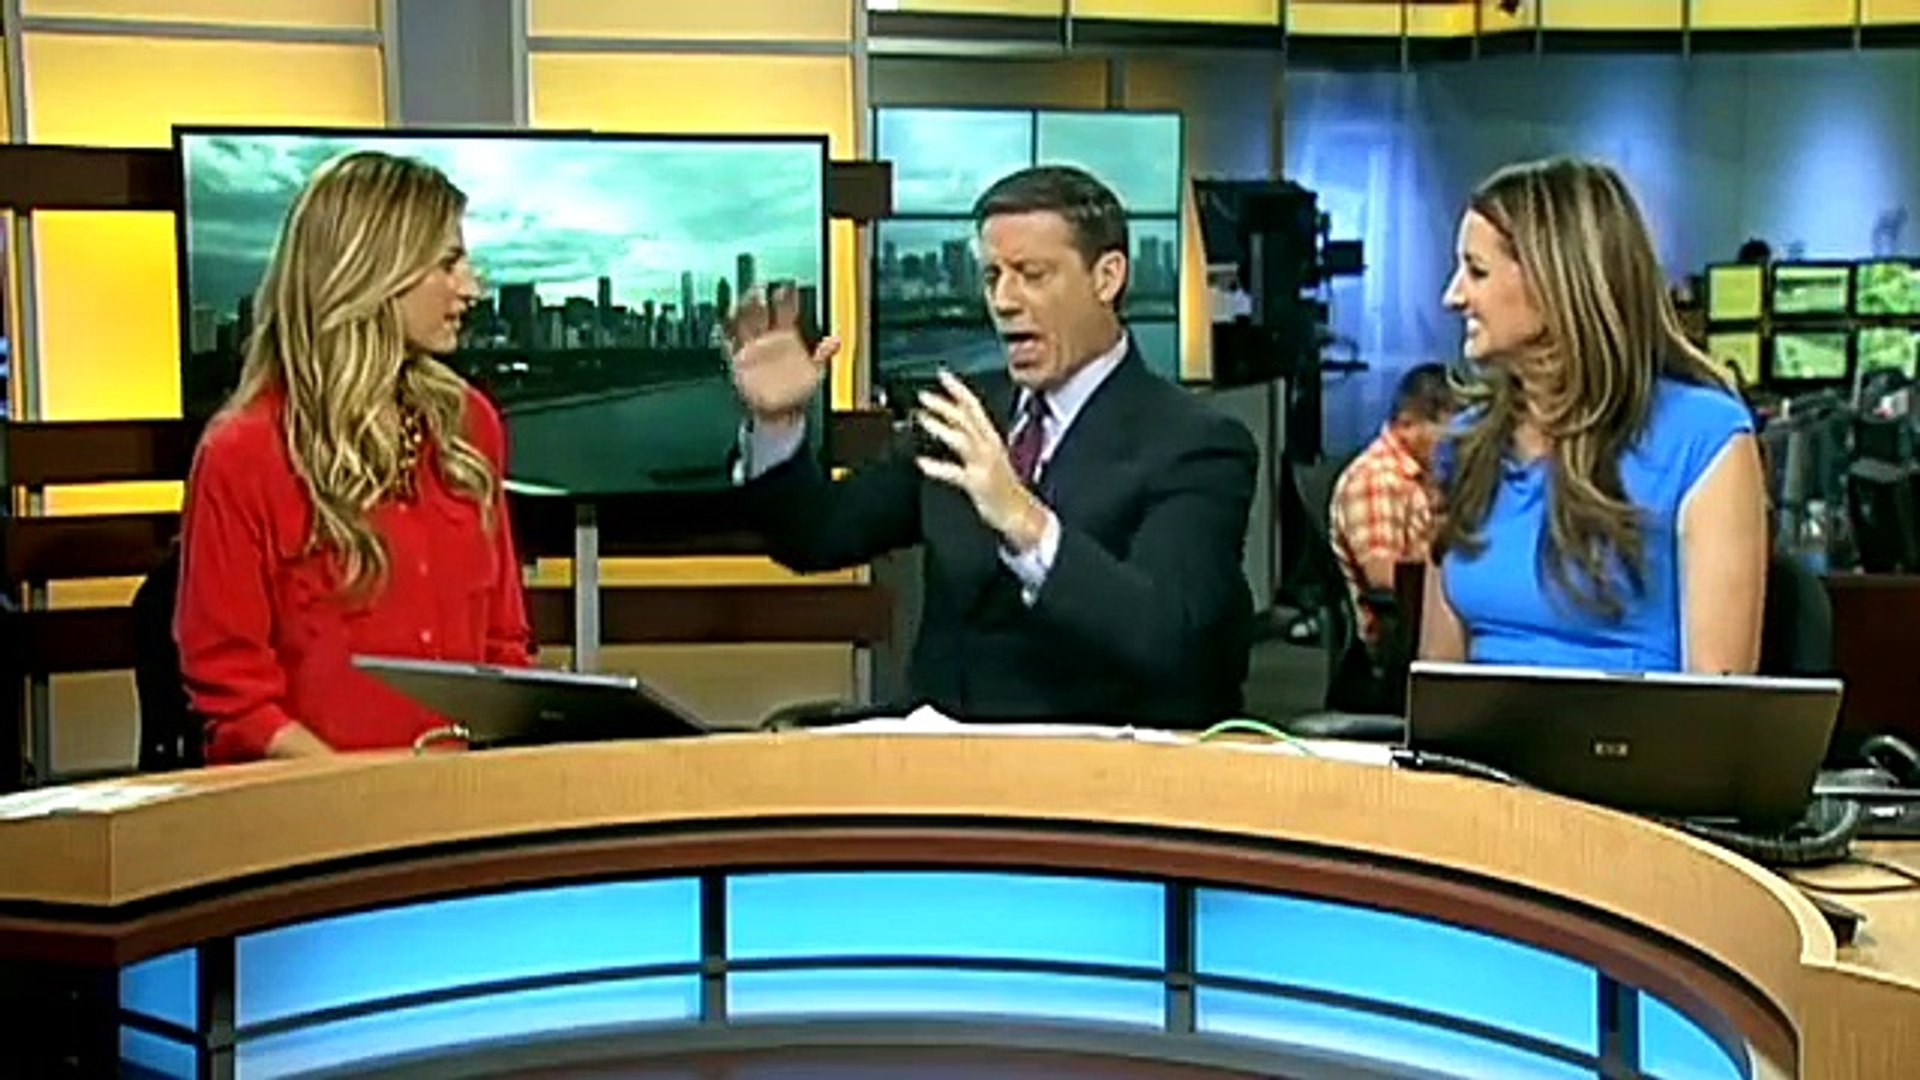 Fox Sports Broadcaster Erin Andrews on Good Day Chicago on Fox Chicago 7-26-12